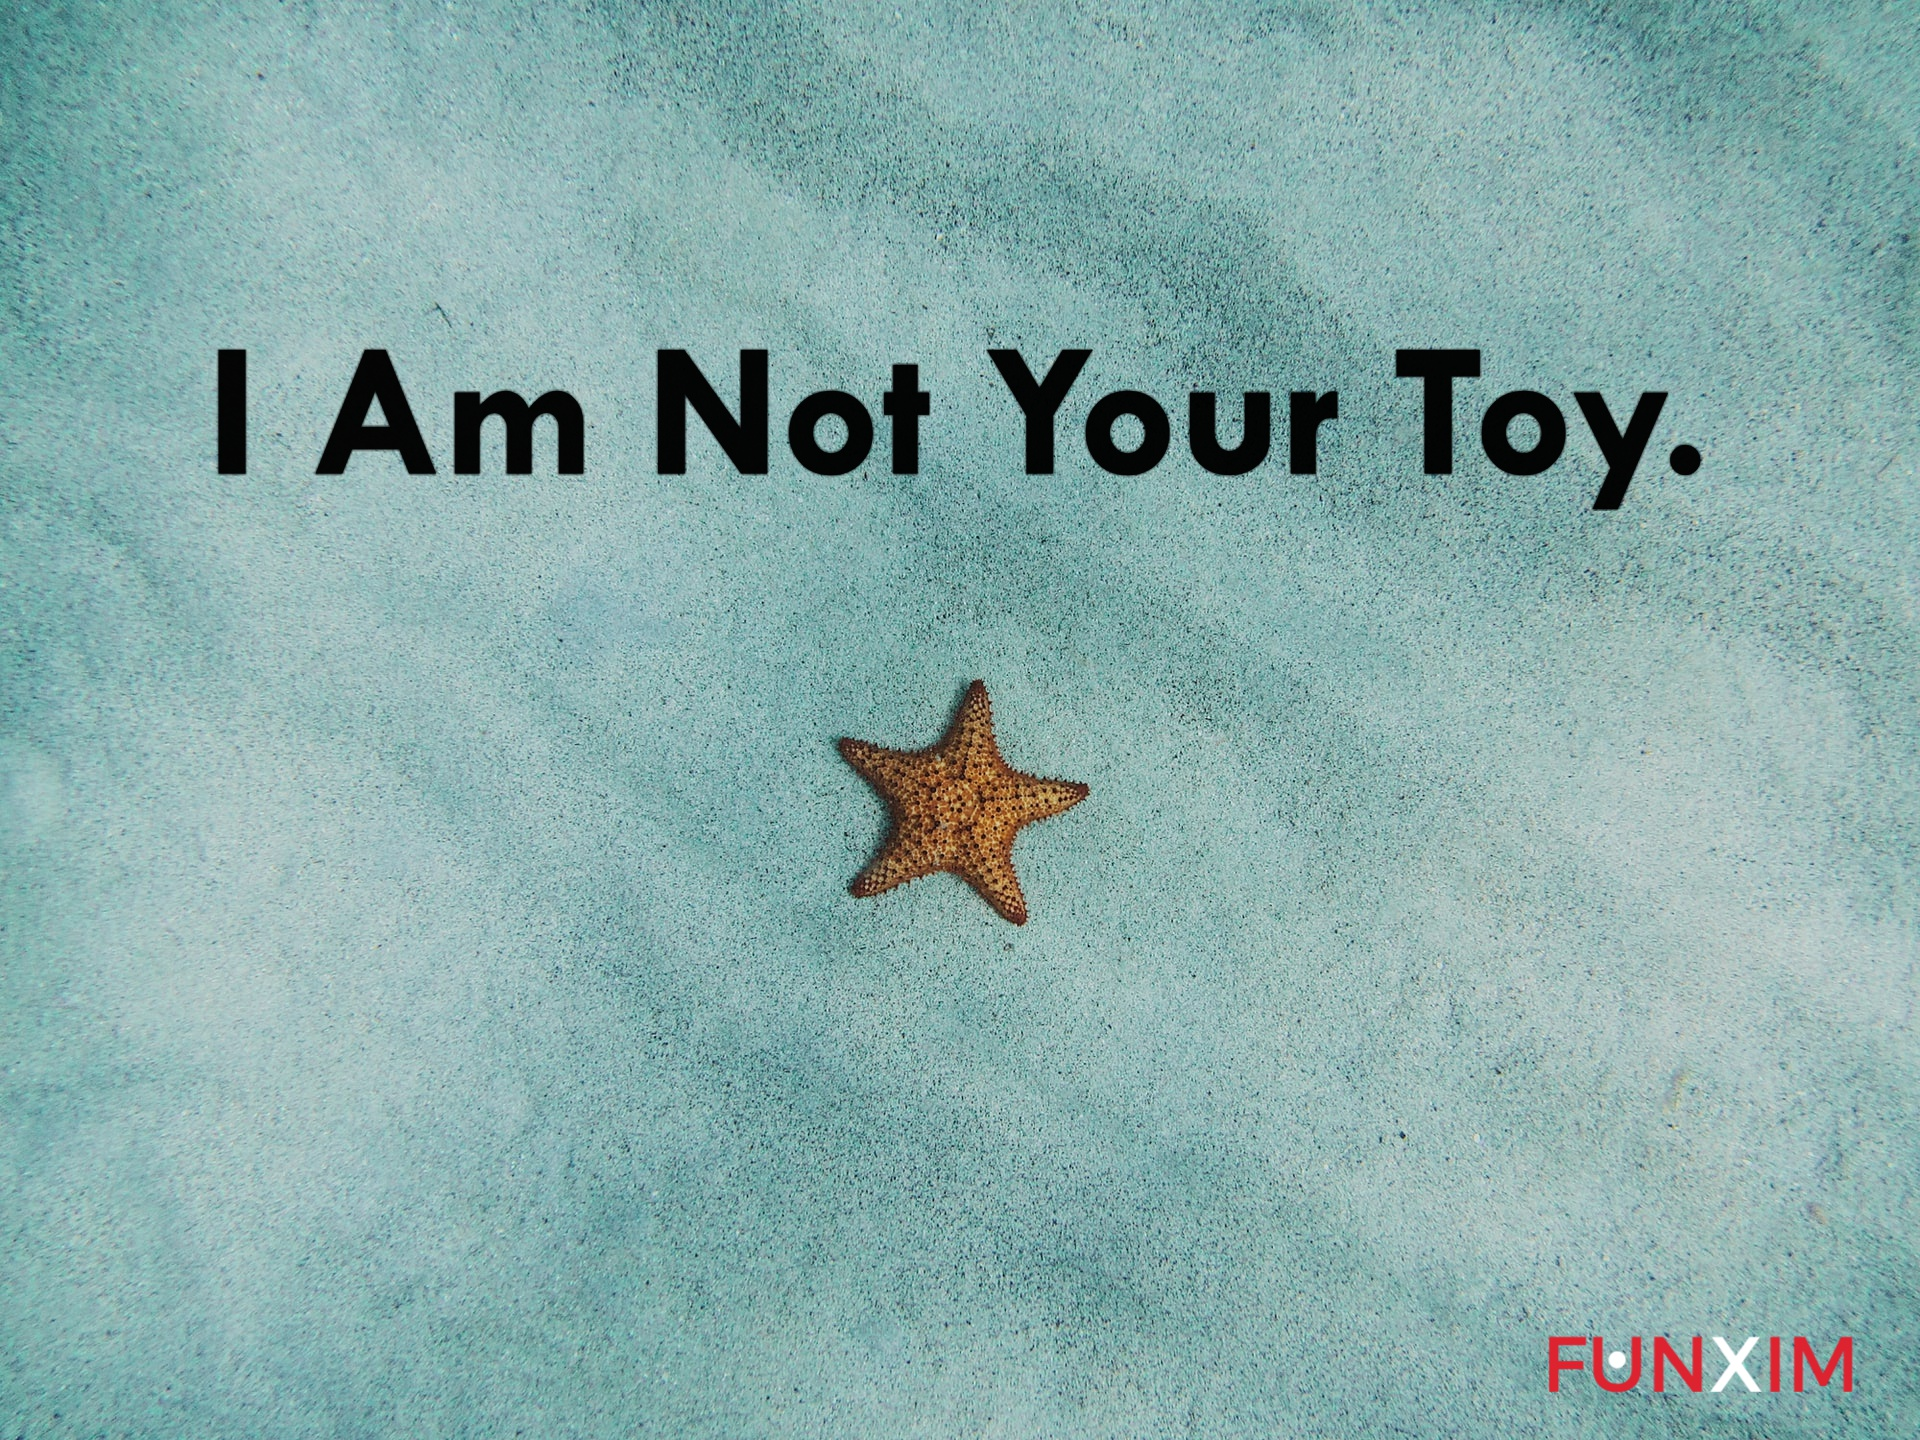 I am not your toy.